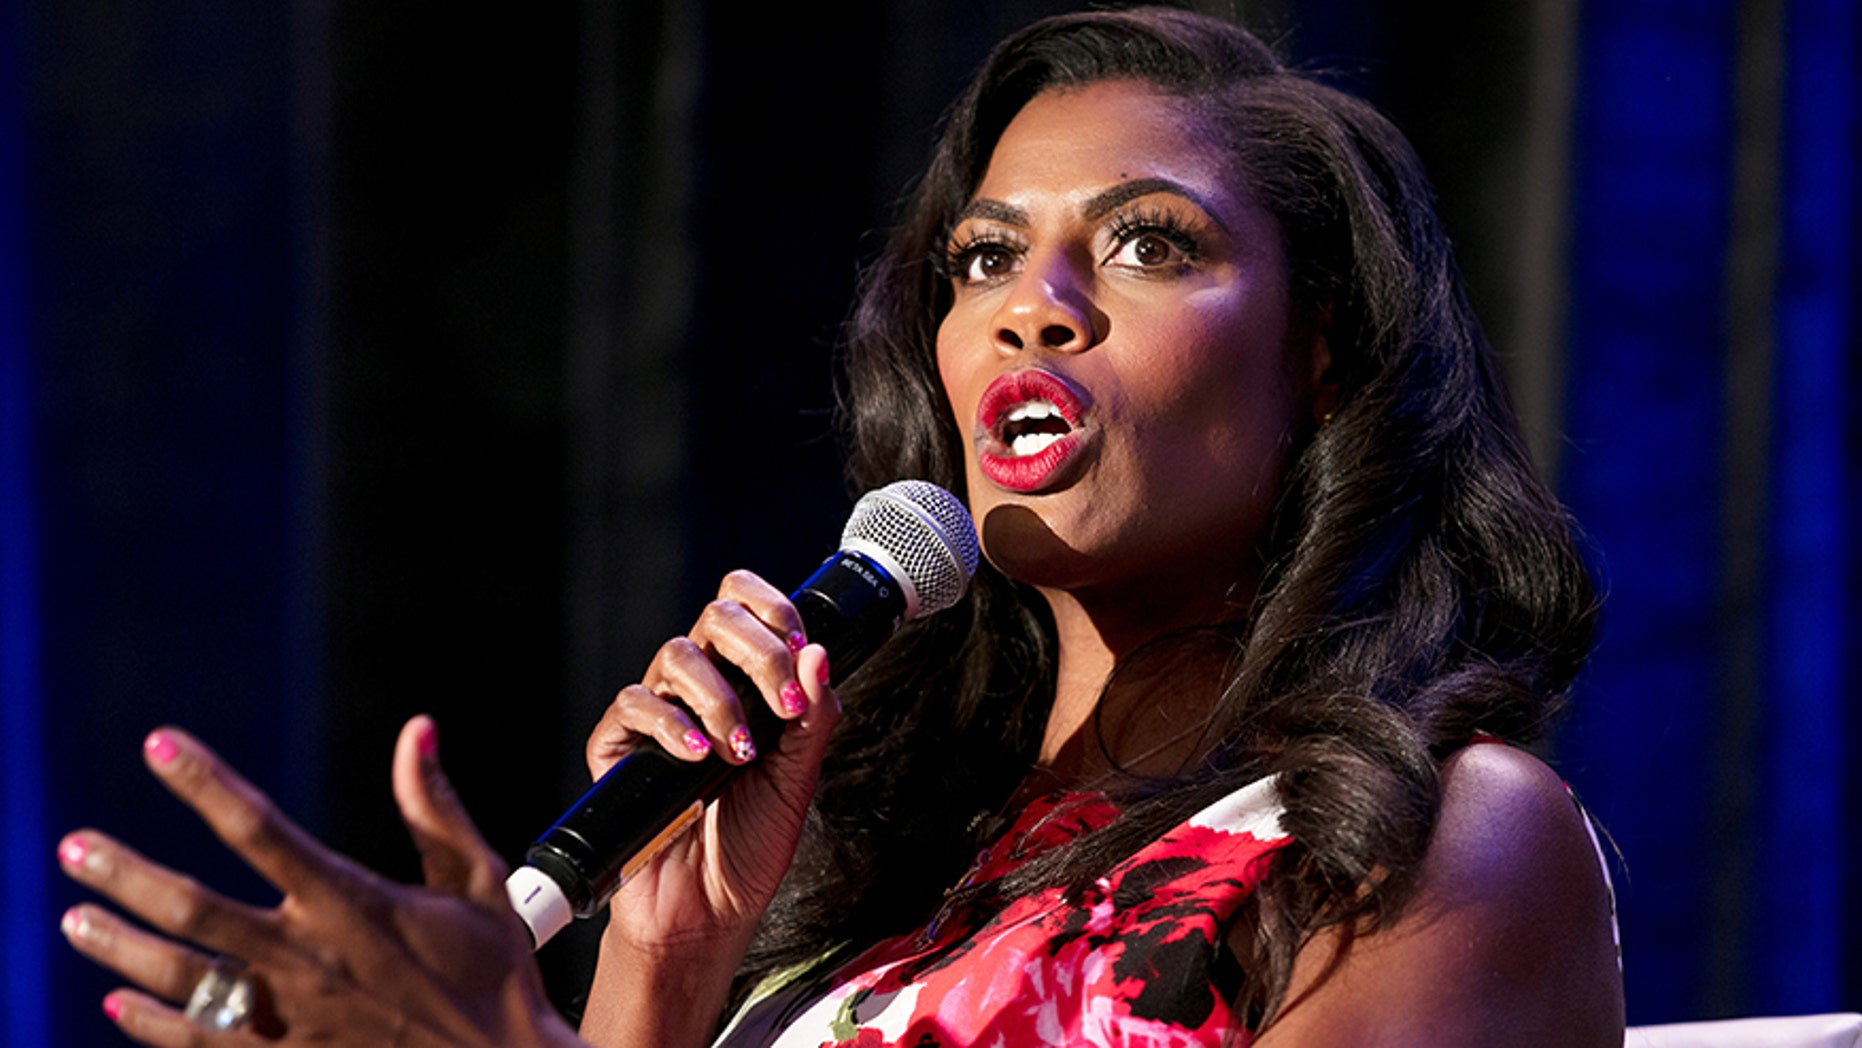 White House aide Omarosa Manigault speaks during a panel discussion at the National Association of Black Journalists convention in New Orleans, Louisiana, U.S. August 11, 2017.  REUTERS/Omar Negrin - RTS1BFSP